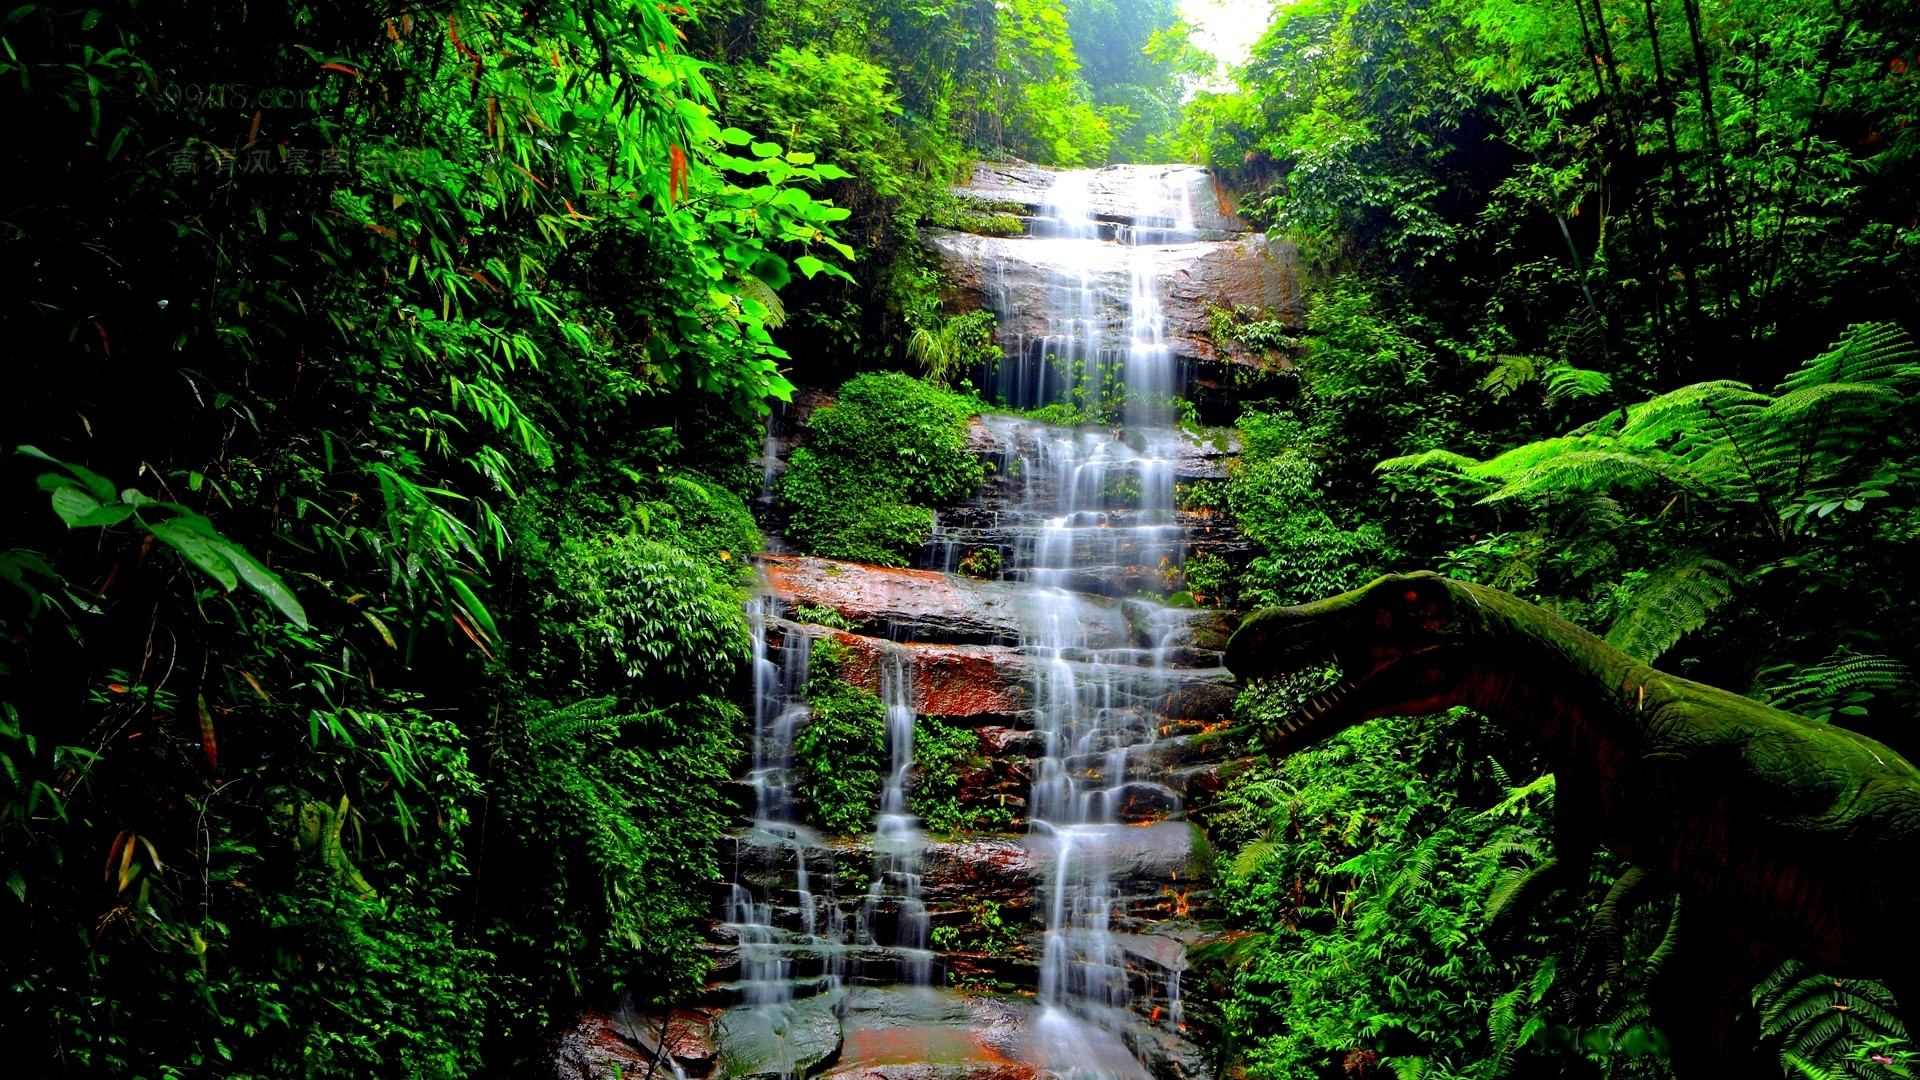 Get The Latest Waterfall Trees Grass News Pictures And Videos Learn All About From Wallpapers4uorg Your Wallpaper